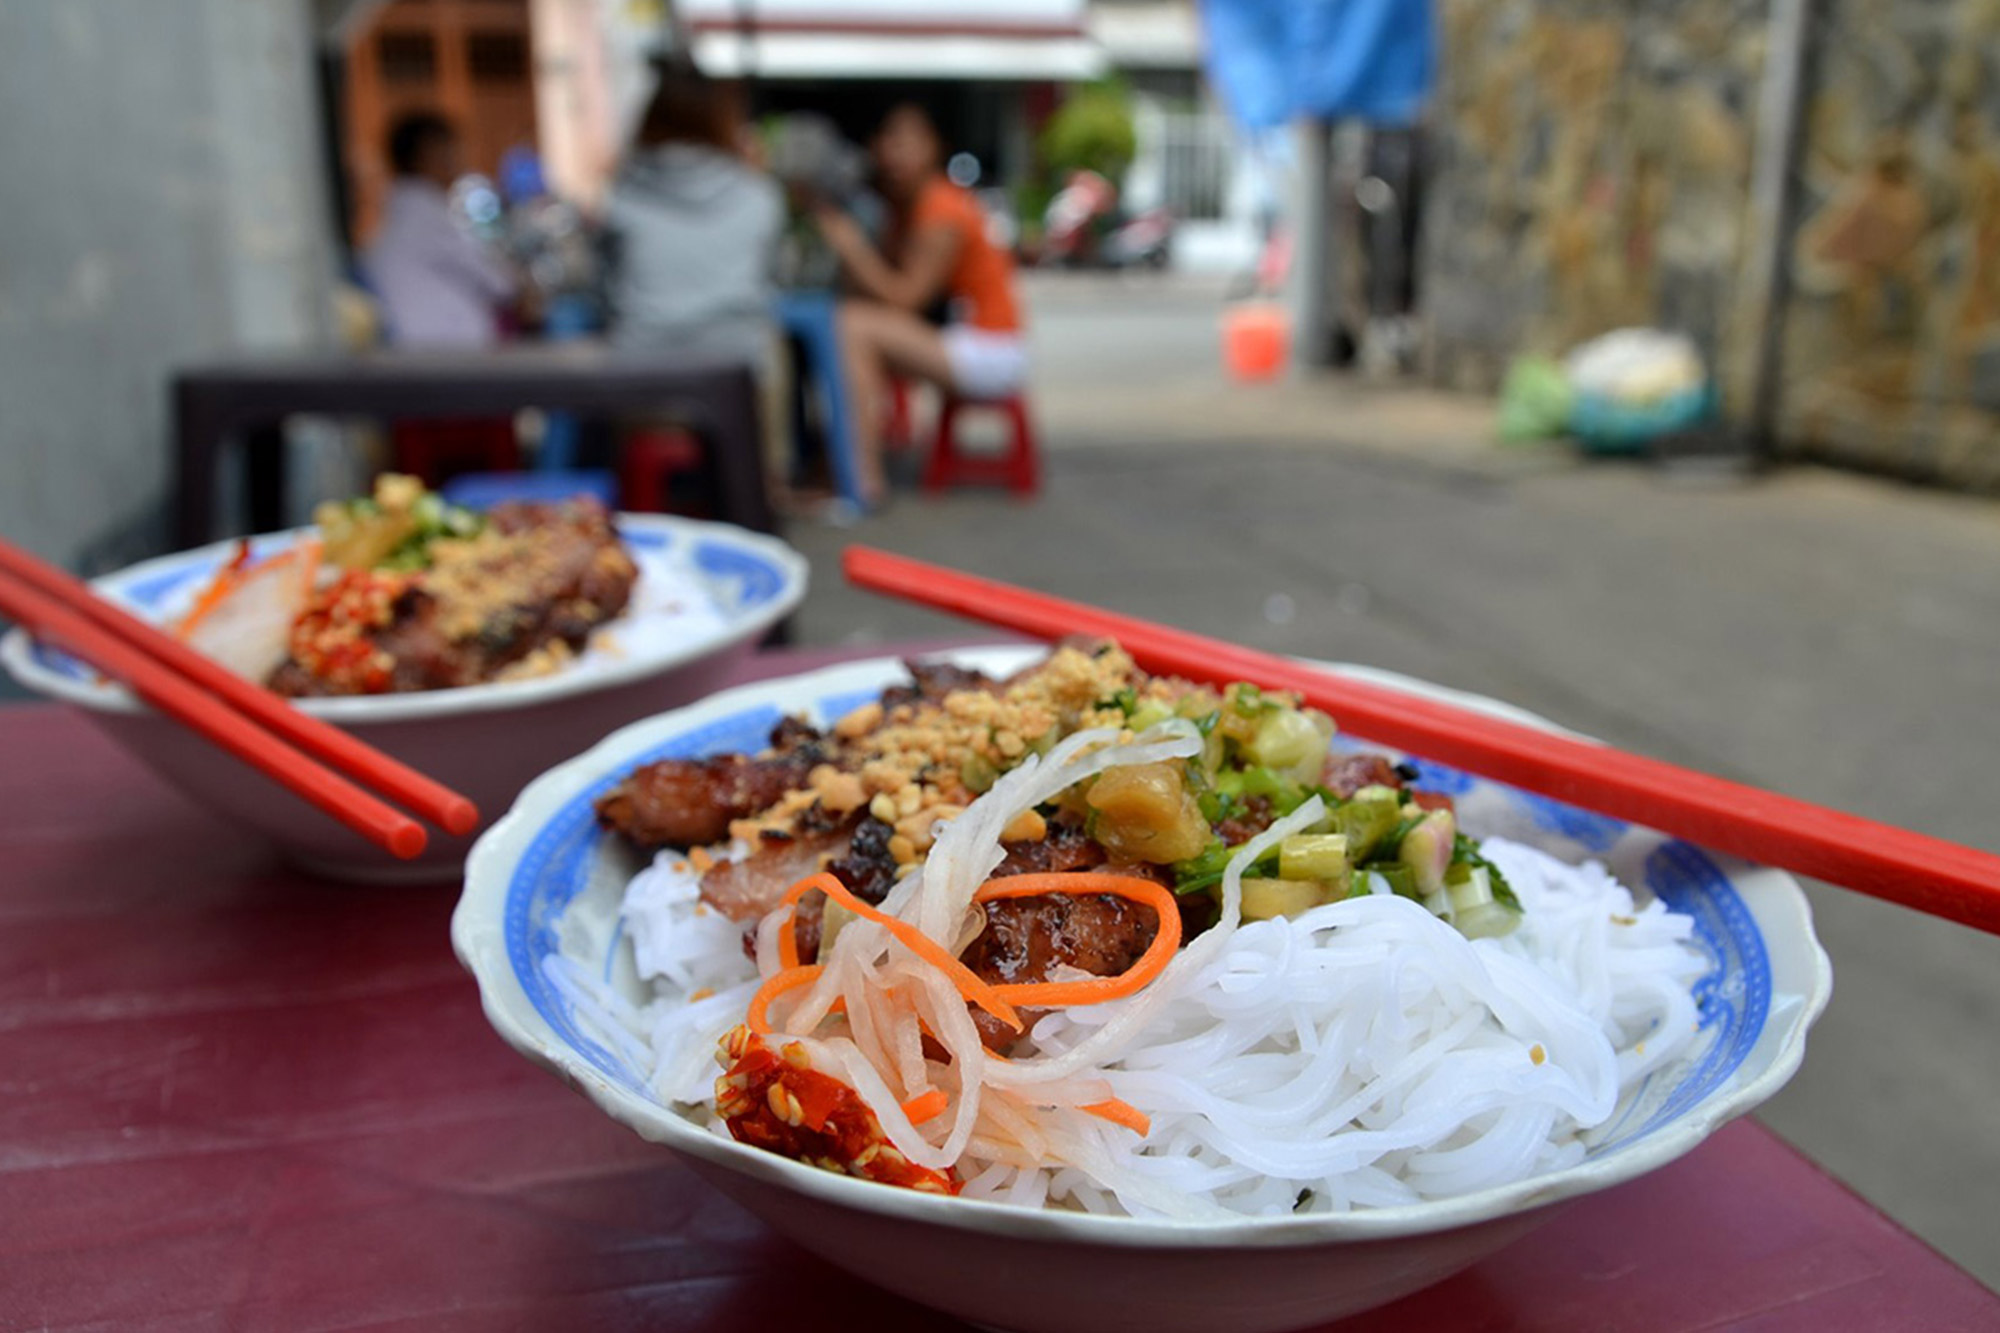 Vietnam Food And Beverage Market Research Insights - Vietcetera